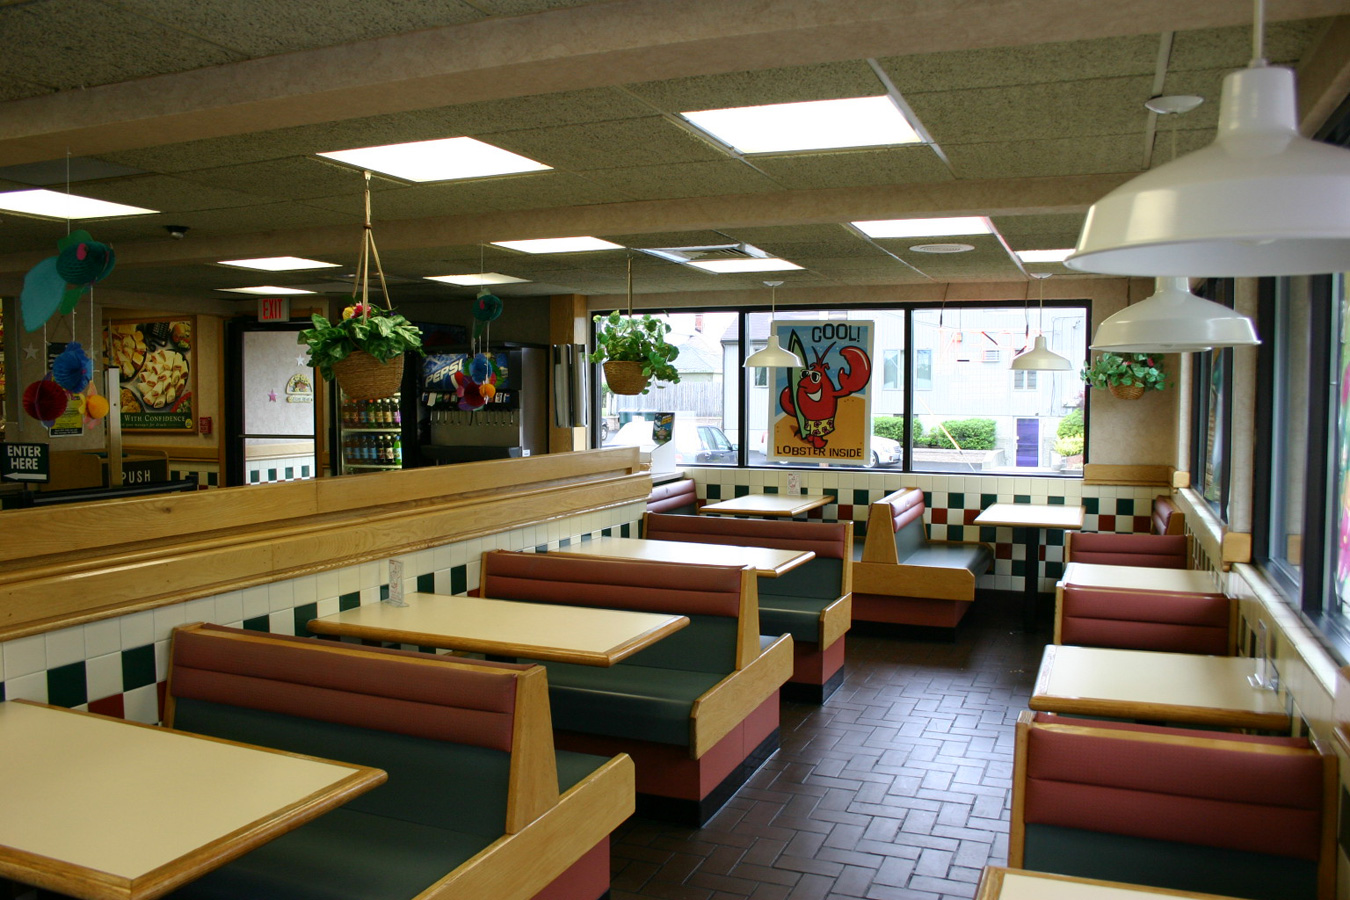 Inside of an empty diner.